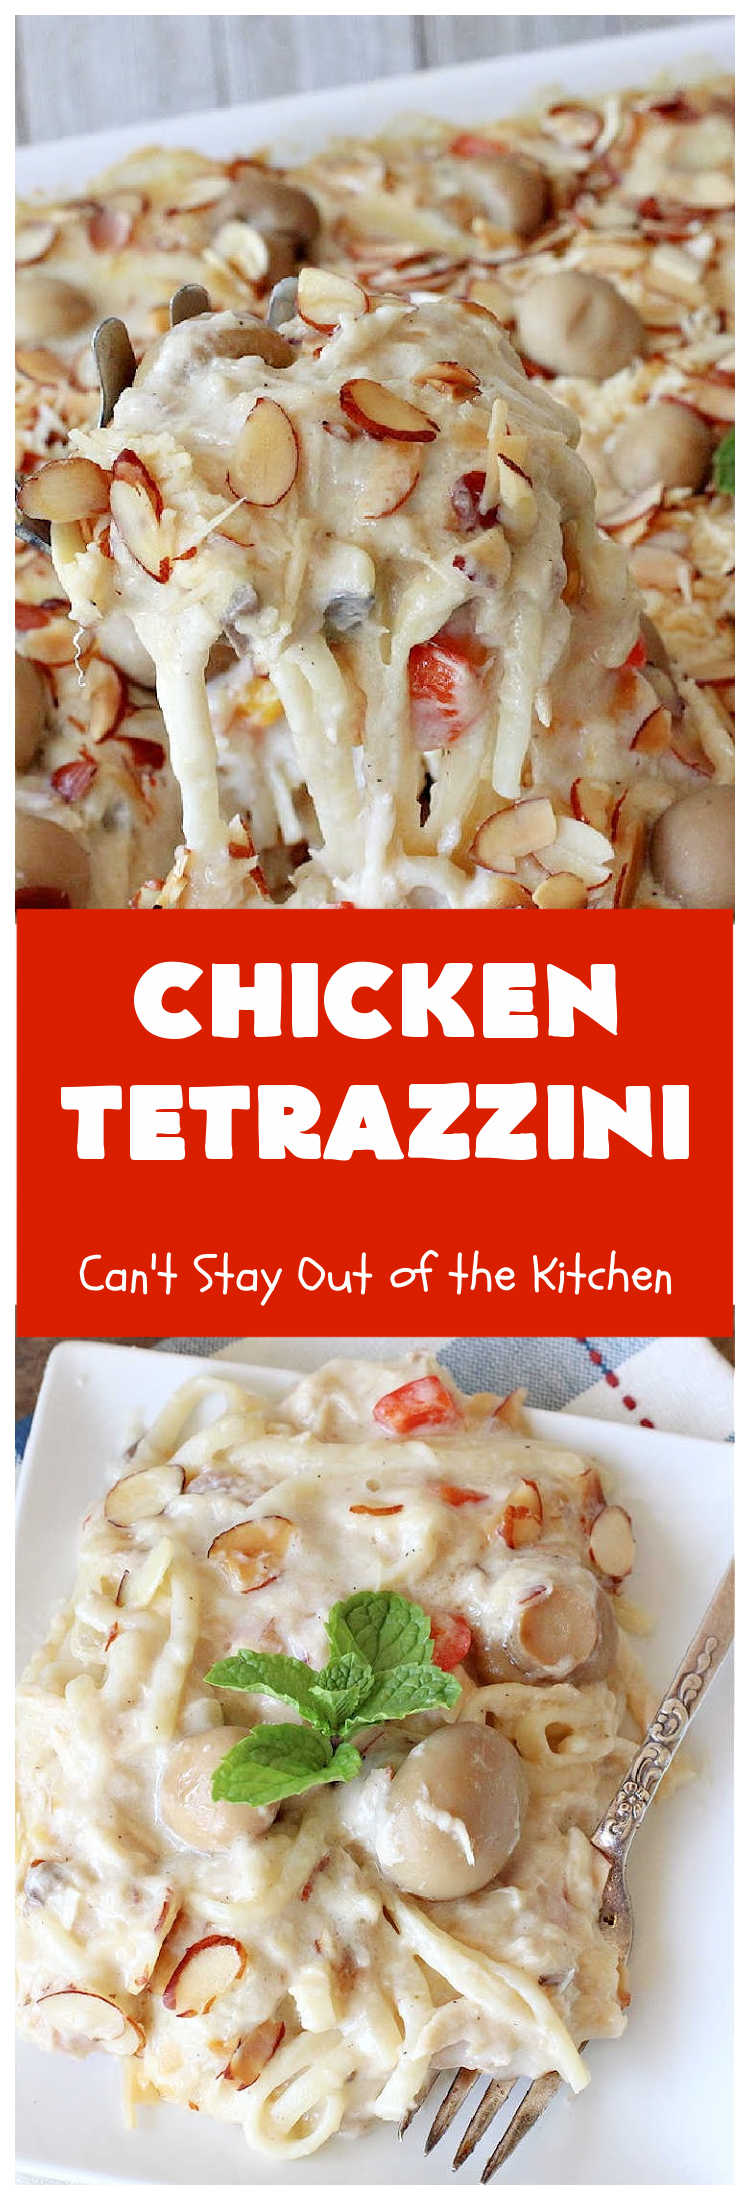 Chicken Tetrazzini   Can't Stay Out of the Kitchen   This #pasta entree is absolutely amazing. It has a thick, creamy, cheesy sauce that' so wonderfully mouthwatering. It's the perfect #chicken dish for company, too. #mushrooms #almonds #mozzarella #parmesan #linguine #ChickenTetrazzini